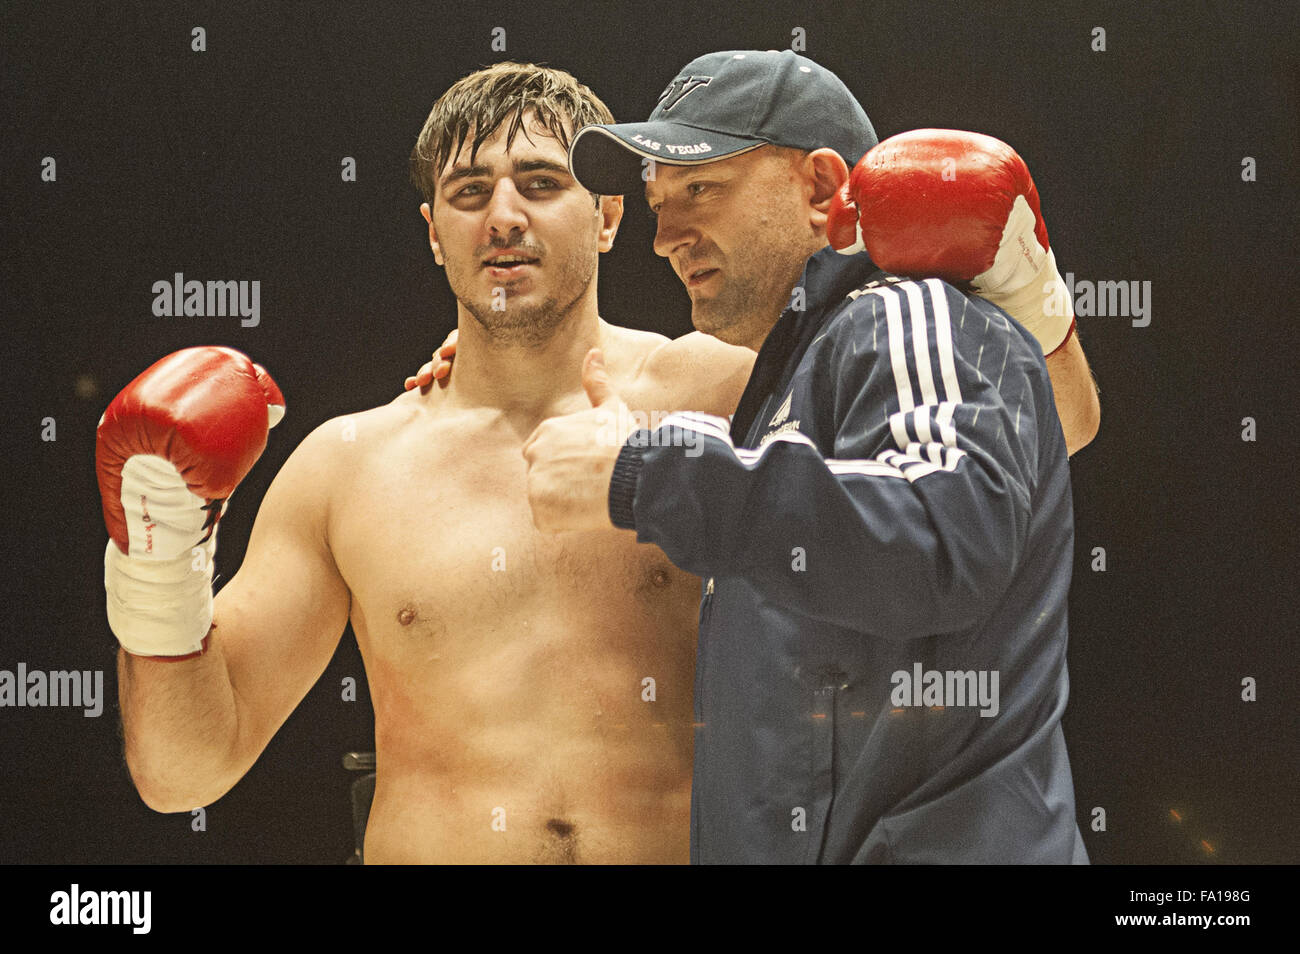 Moscow, Russia. 19th Dec, 2015. Artem Vahitov poses with his coach Vitaly Miller the Muay Thai Moscow match in Moscow, - Stock Image